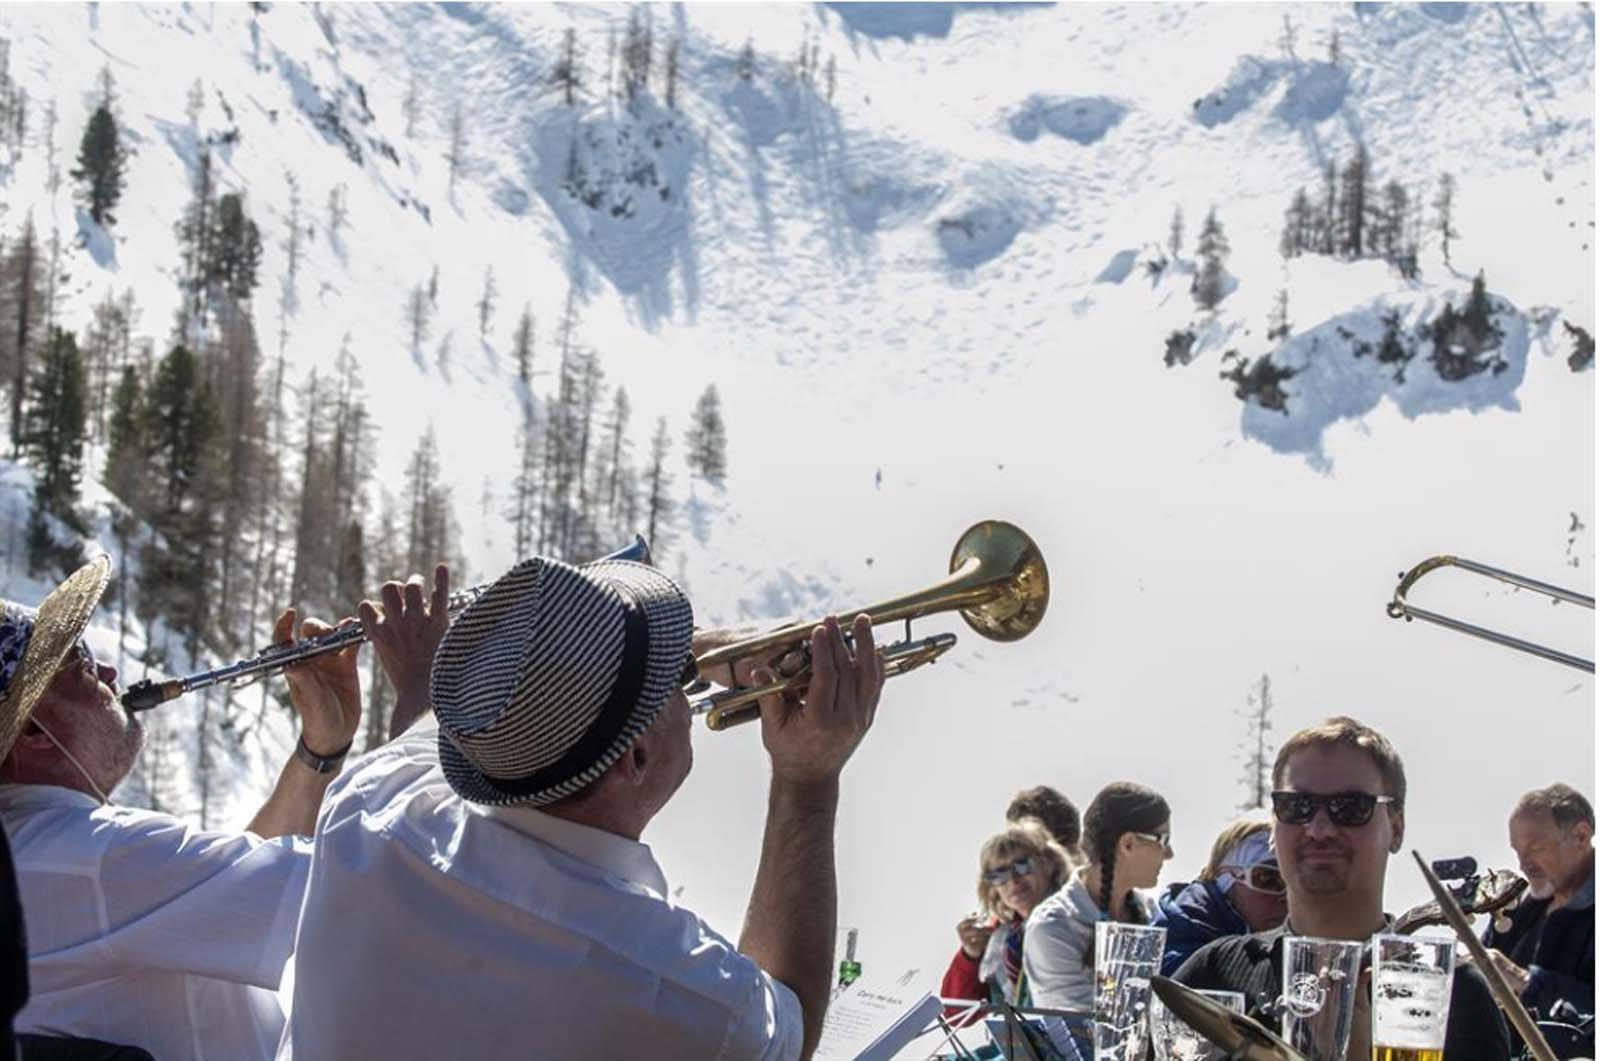 The Dixiland Band is now at the Salzburger Sportwelt